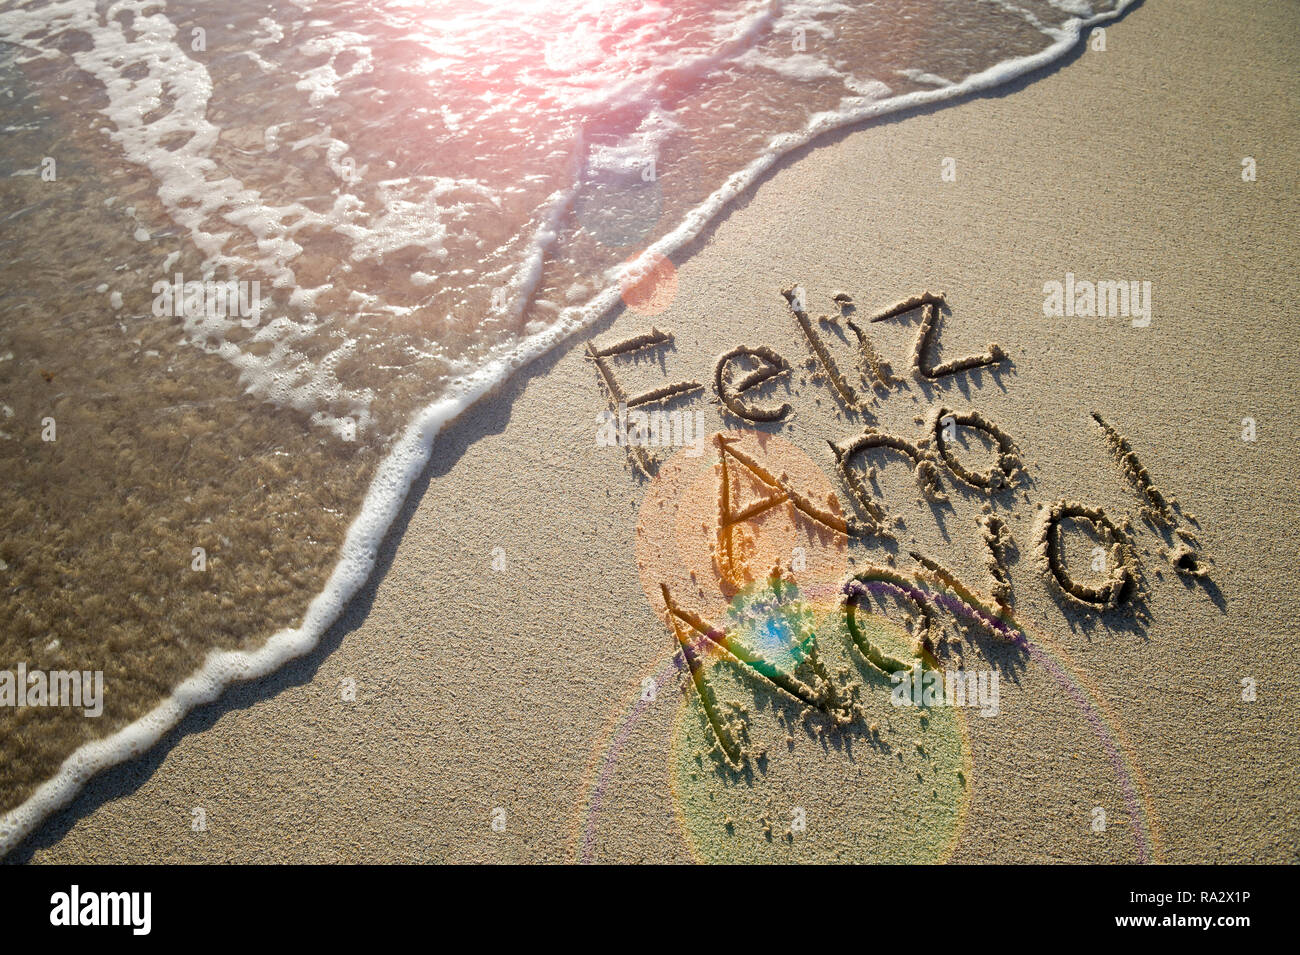 Portuguese Feliz Ano Novo (Happy New Year) message handwritten in textured lettering on smooth sand with a fresh new wave on a Brazilian beach - Stock Image